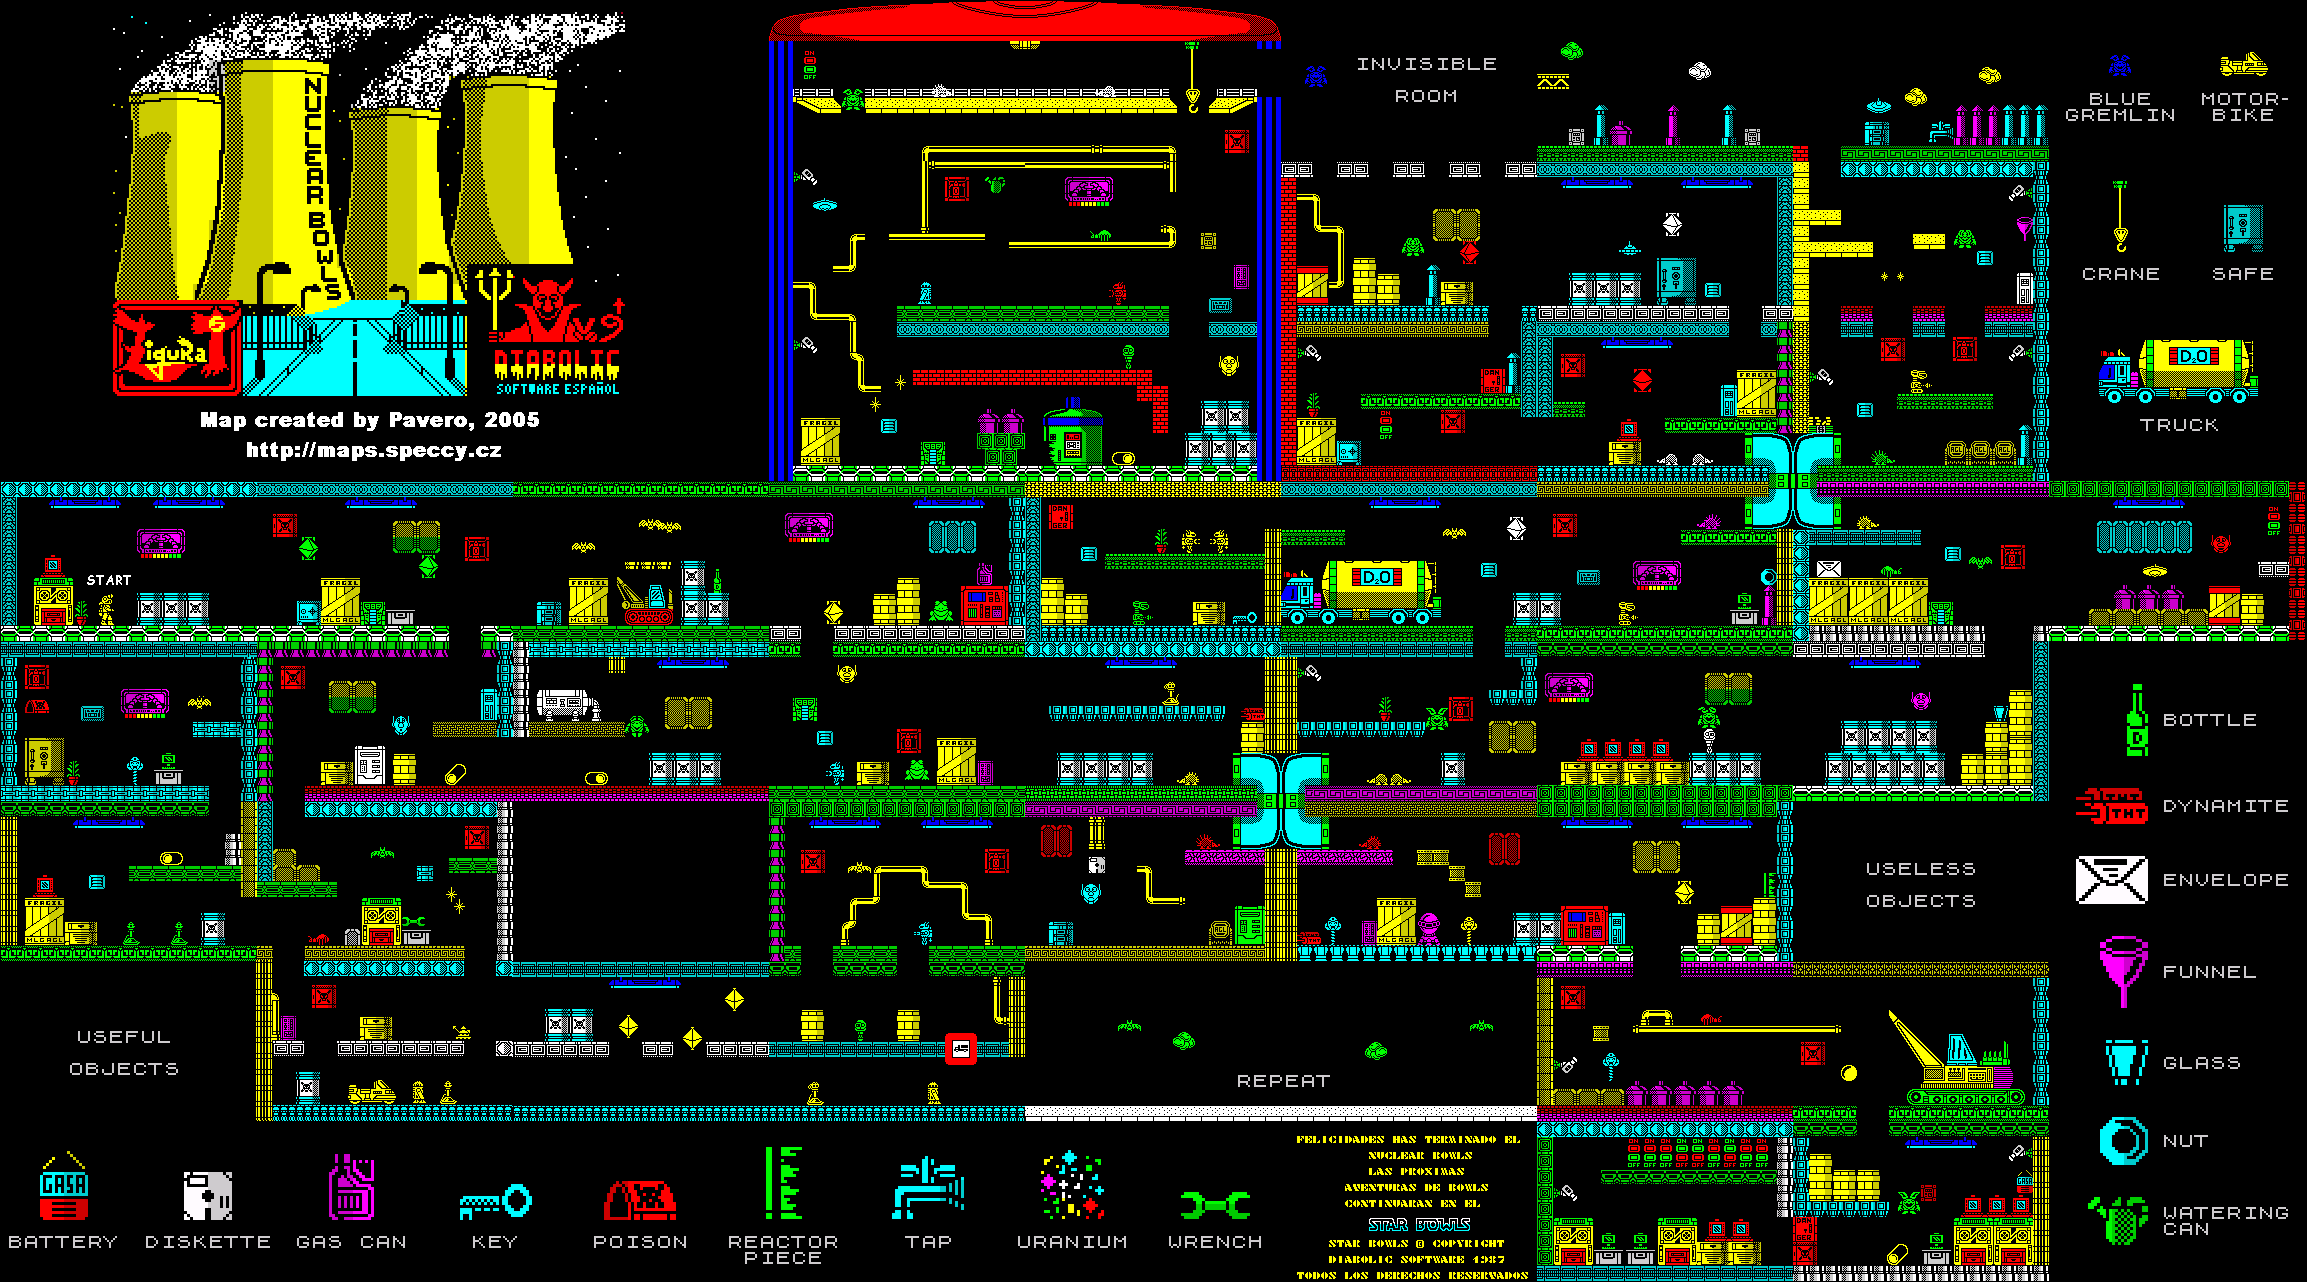 Nuclear Bowls - The Map